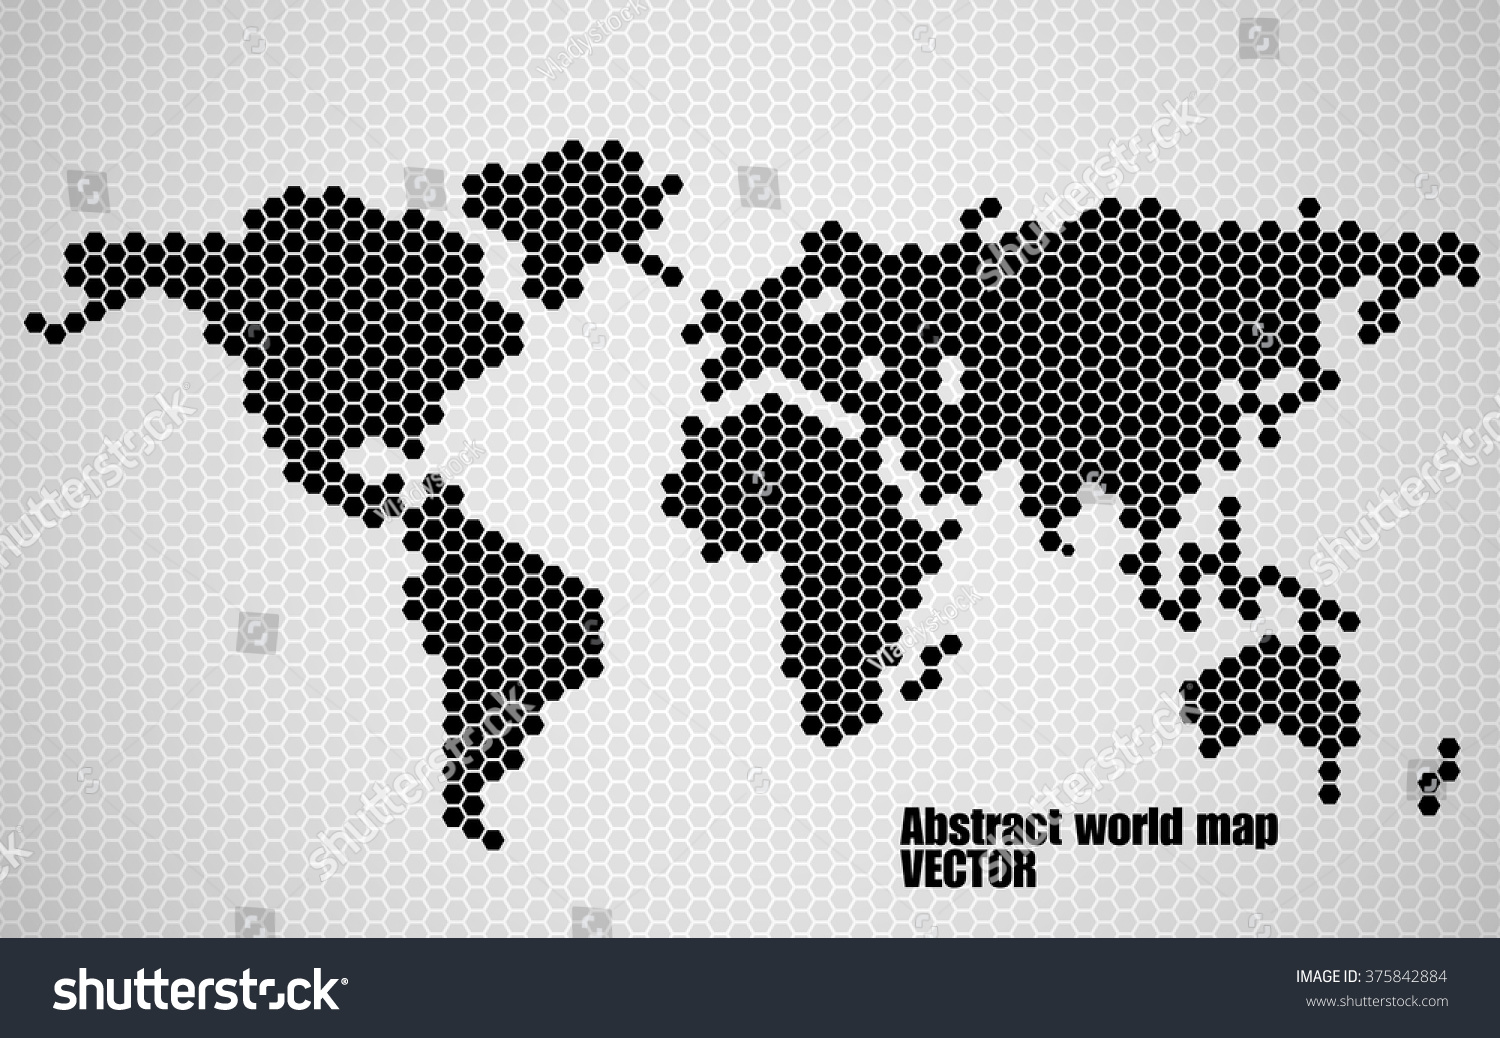 Abstract world map hexagons vector illustration stock vector abstract world map of hexagons vector illustration eps 10 gumiabroncs Image collections